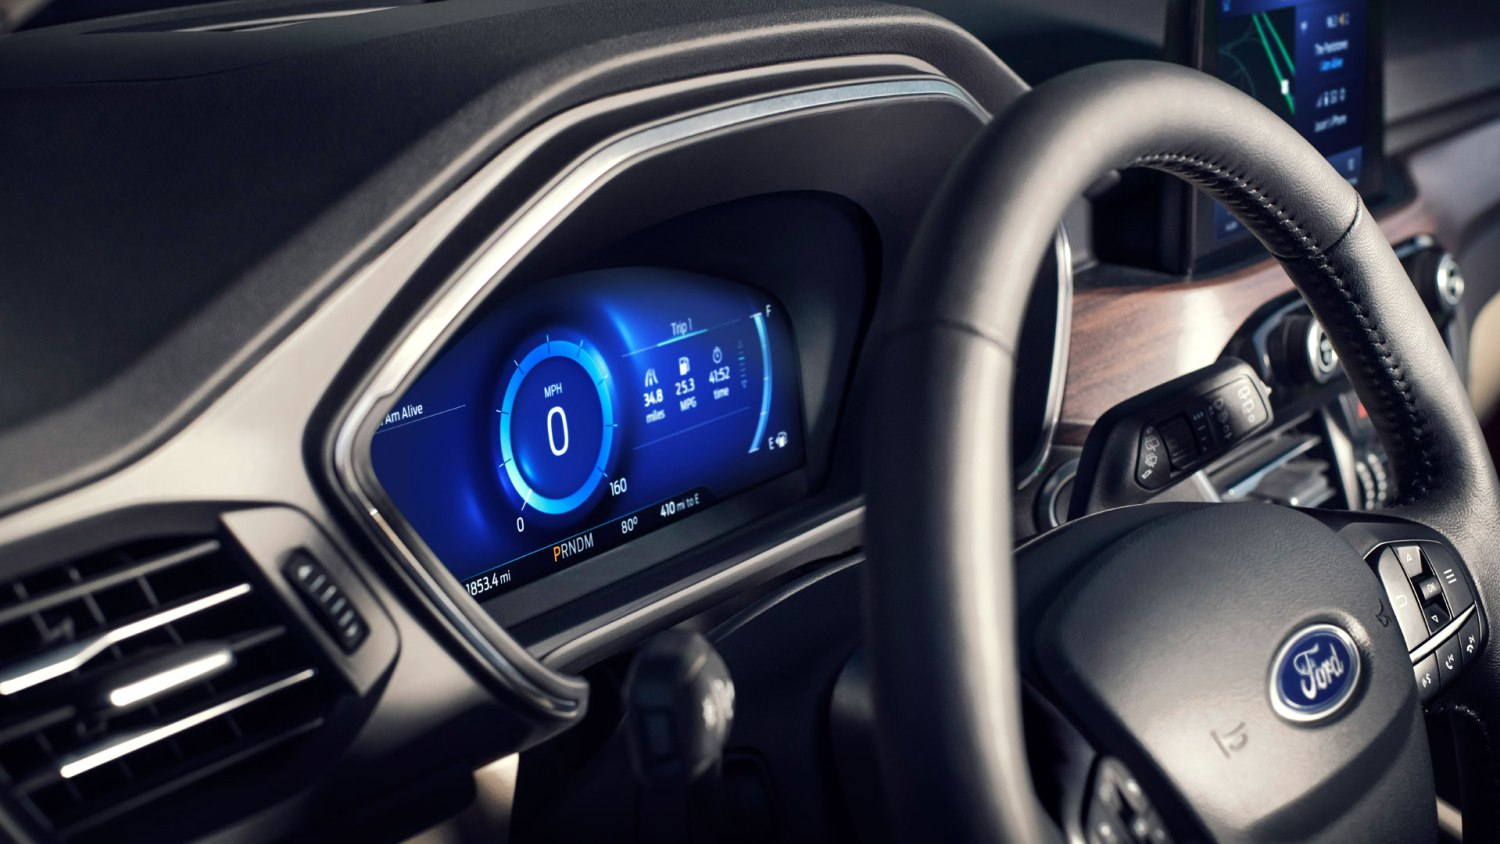 New Ford Escape instrument cluster